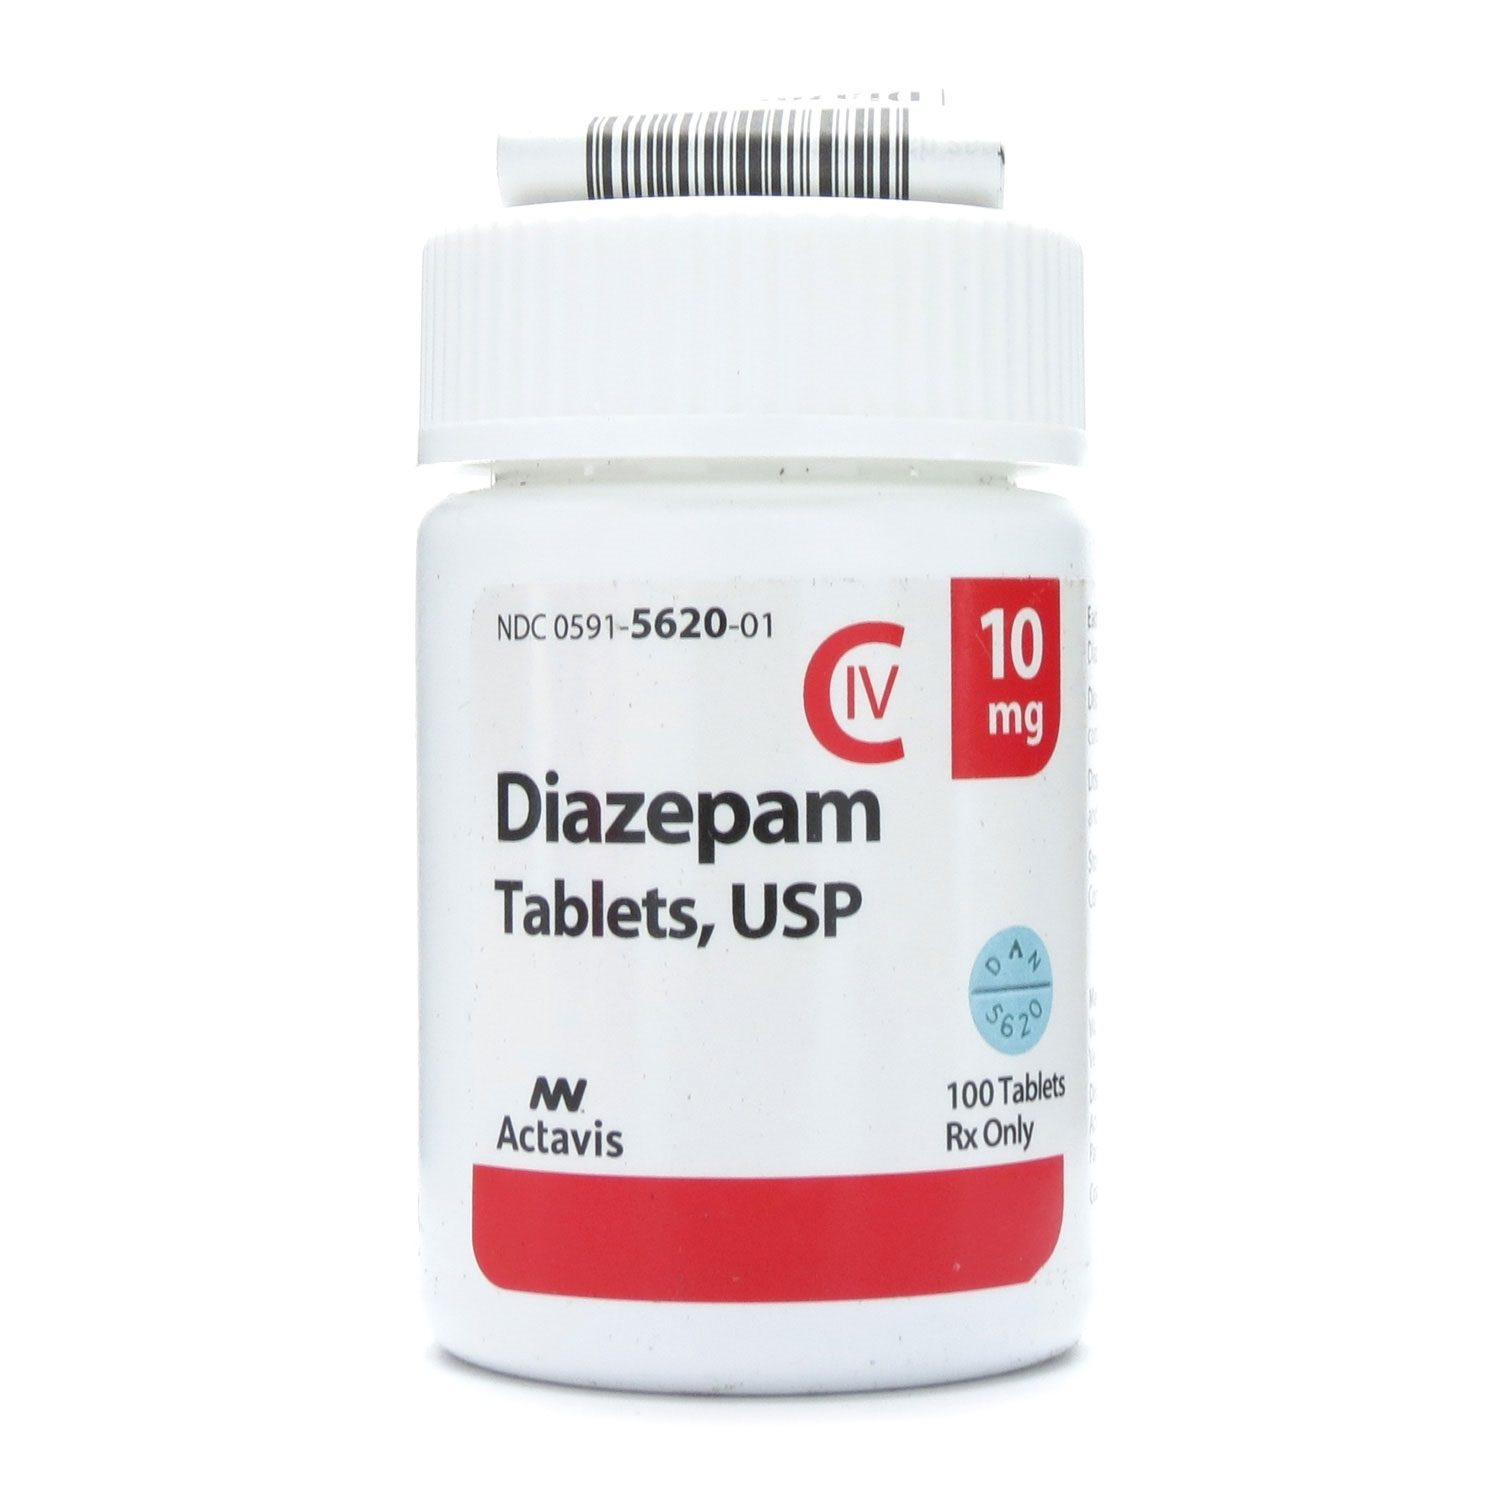 antidote for diazepam overdose